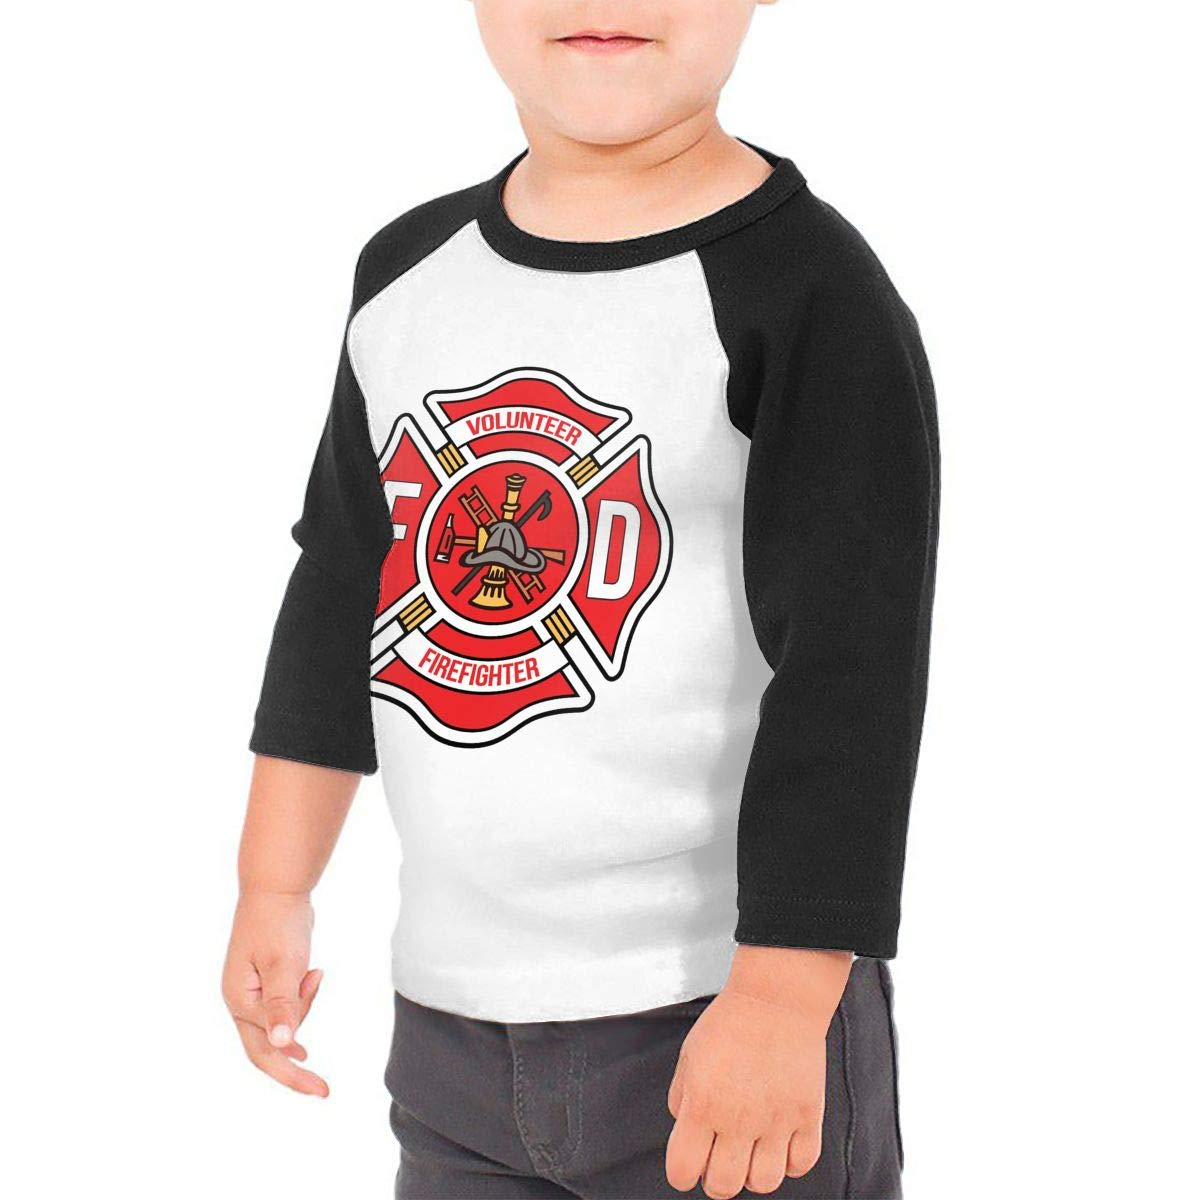 Manlee Volunteer Firefighter Unisex 100/% Cotton Childrens 3//4 Sleeves T-Shirt Top Tees 2T~5//6T